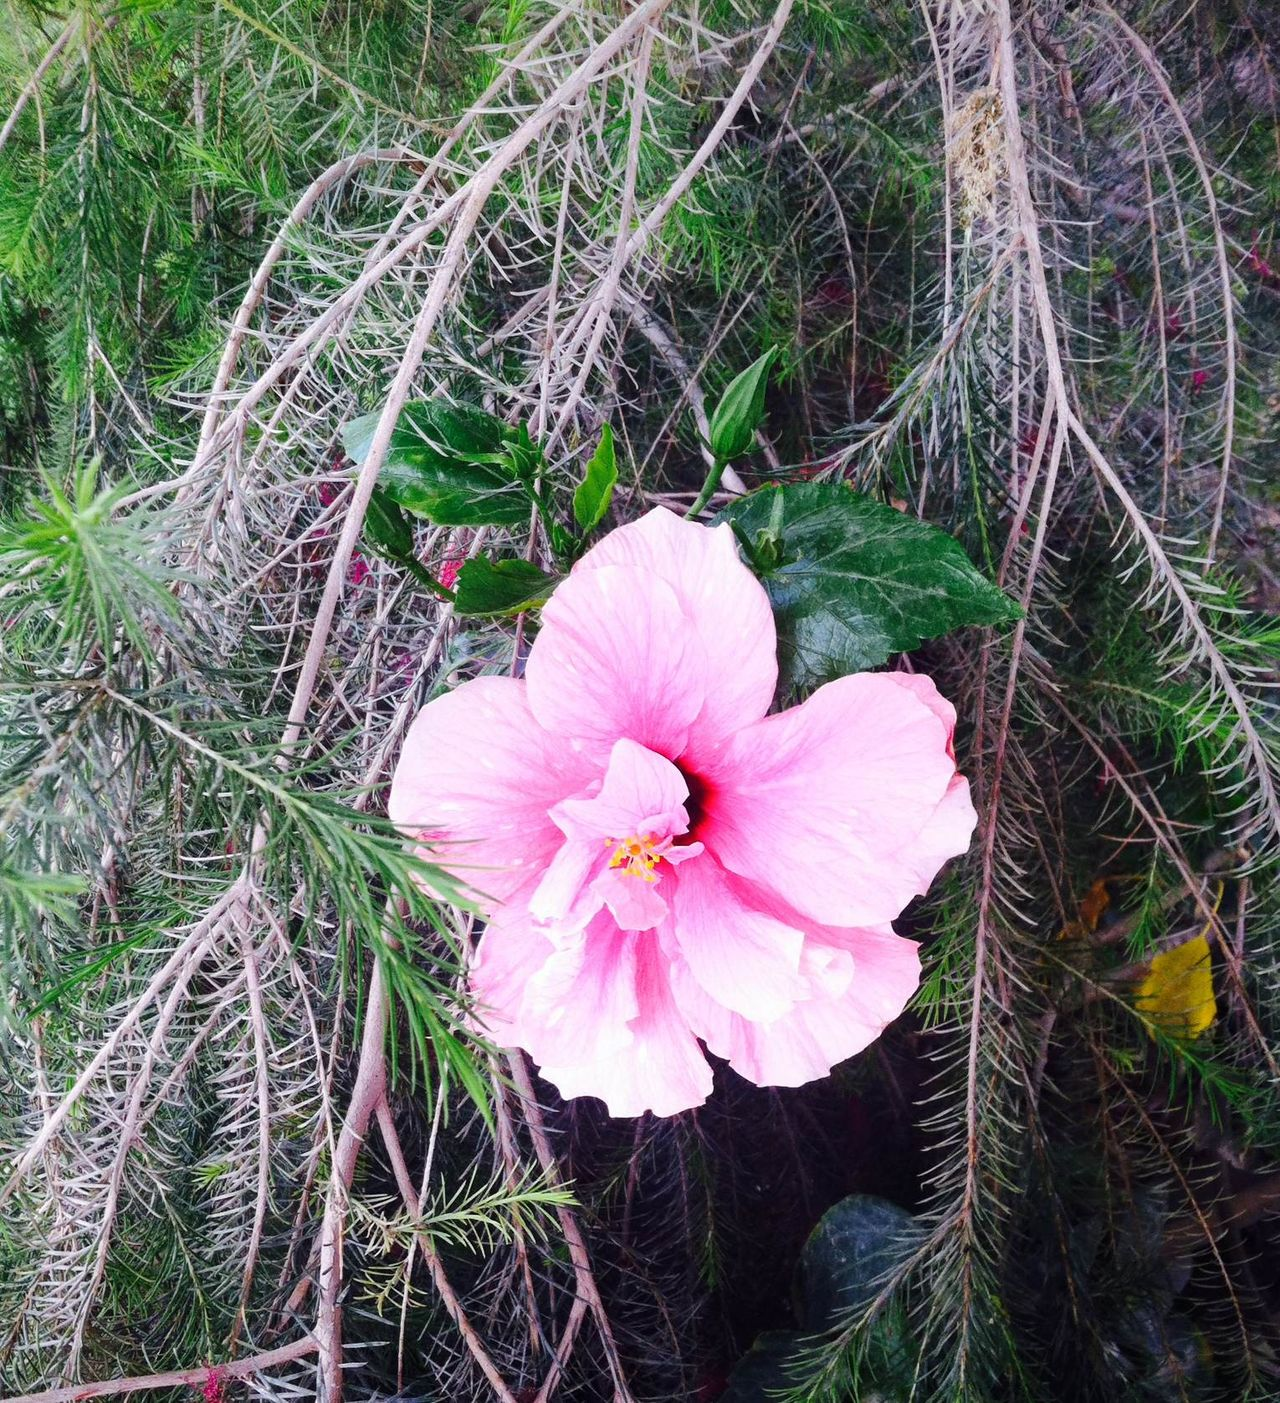 Air Breeze Day Flower Freshness Nature Pink Simple Beauty Simple Photography Tree